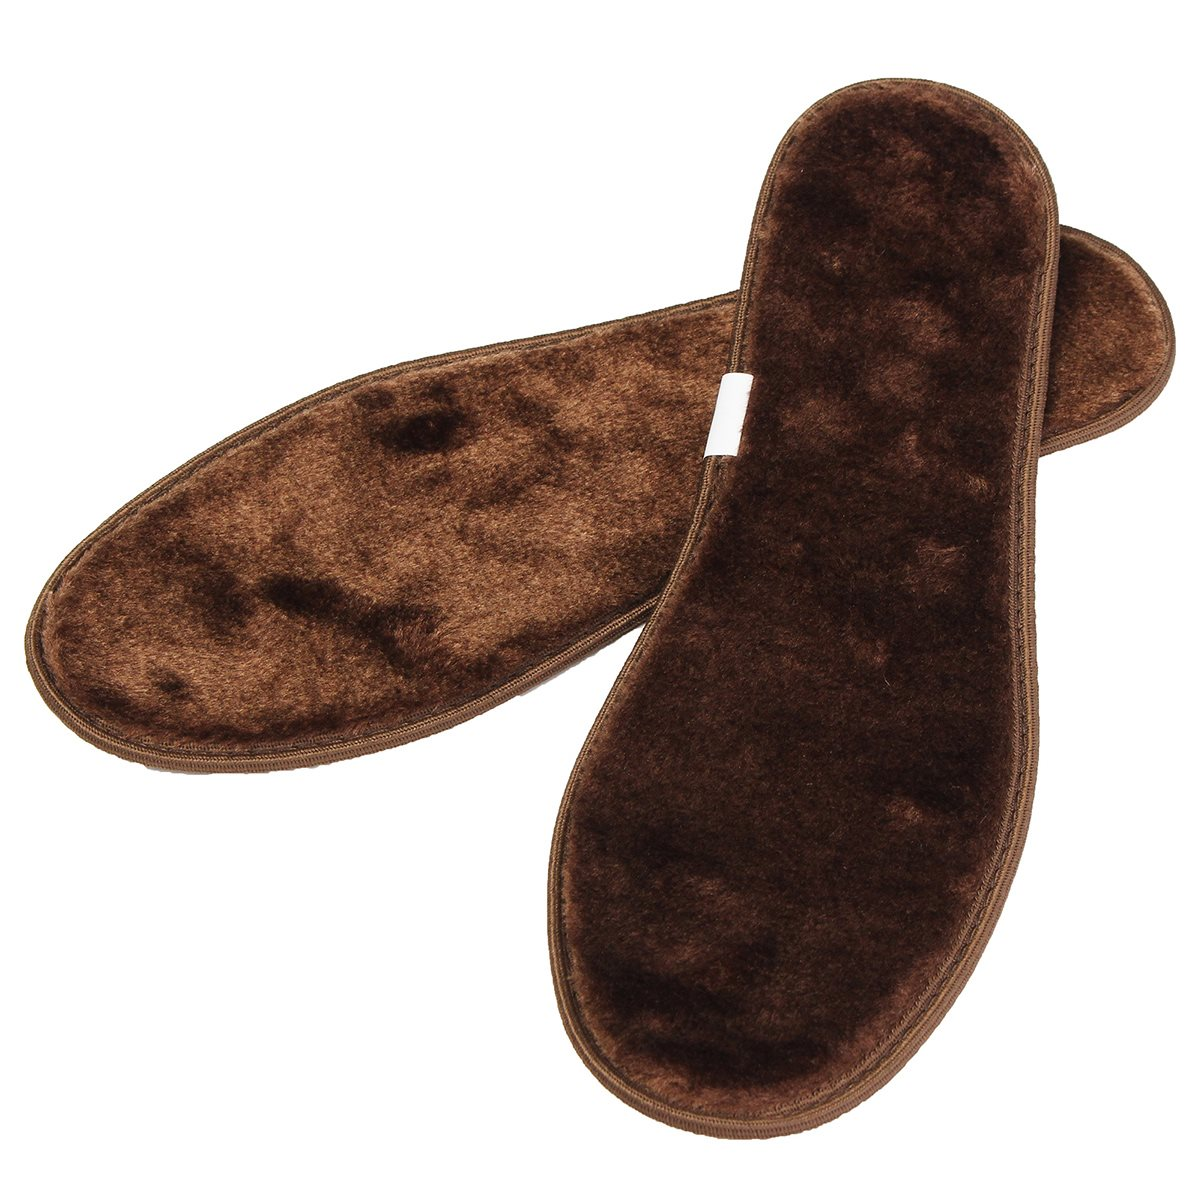 1 Pair Fur Shoes Insoles, Warm Thick Quality Breathable Winter Insole Pads Inner Soles Man And Women Snow Boot Size 36-45 Unisex